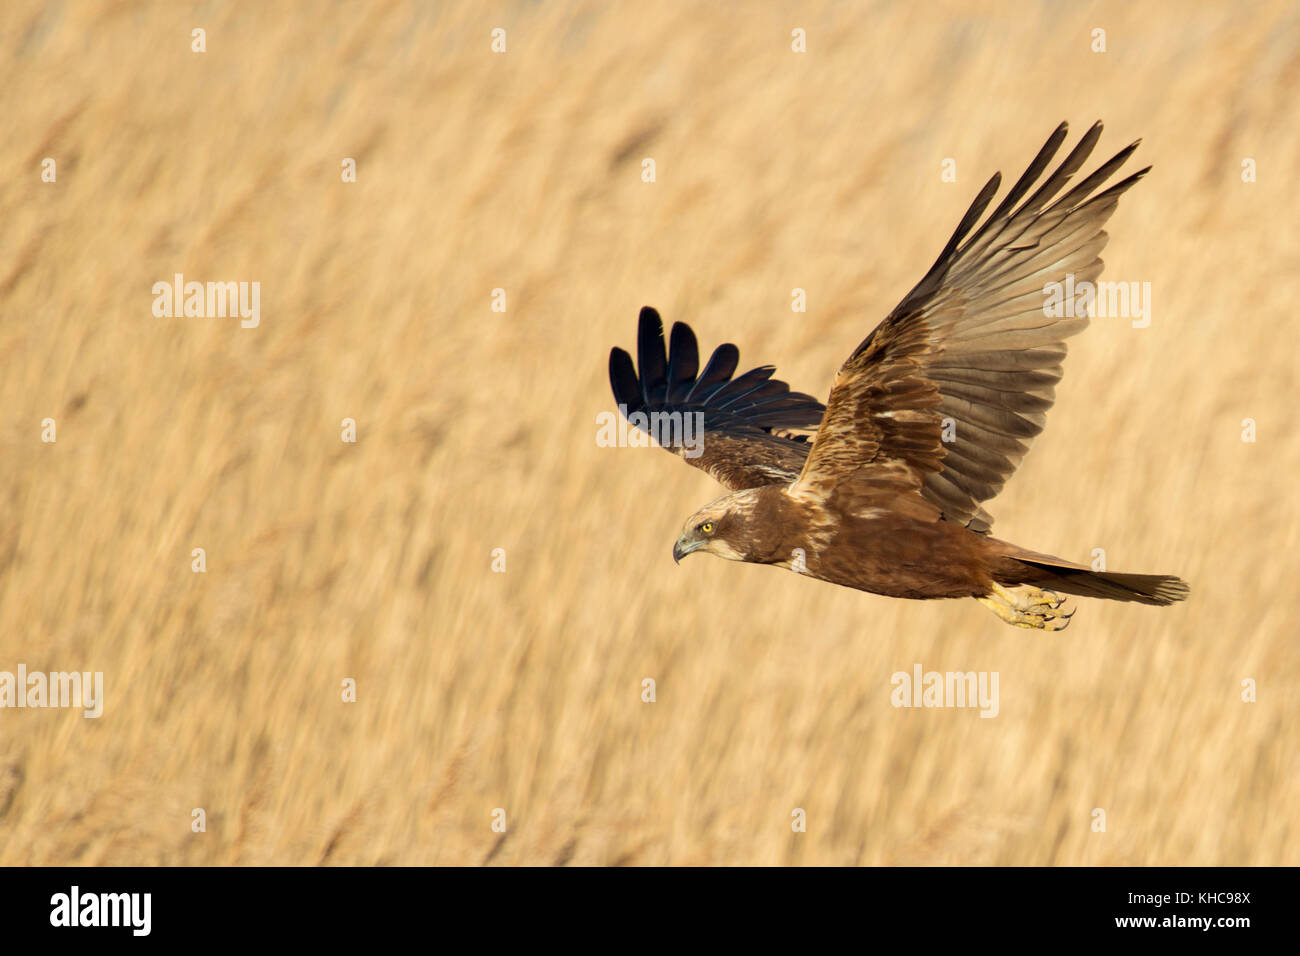 Western Marsh Harrier / Rohrweihe ( Circus aeruginosus ) in flight, searching for prey, flying over golden reed, Stock Photo